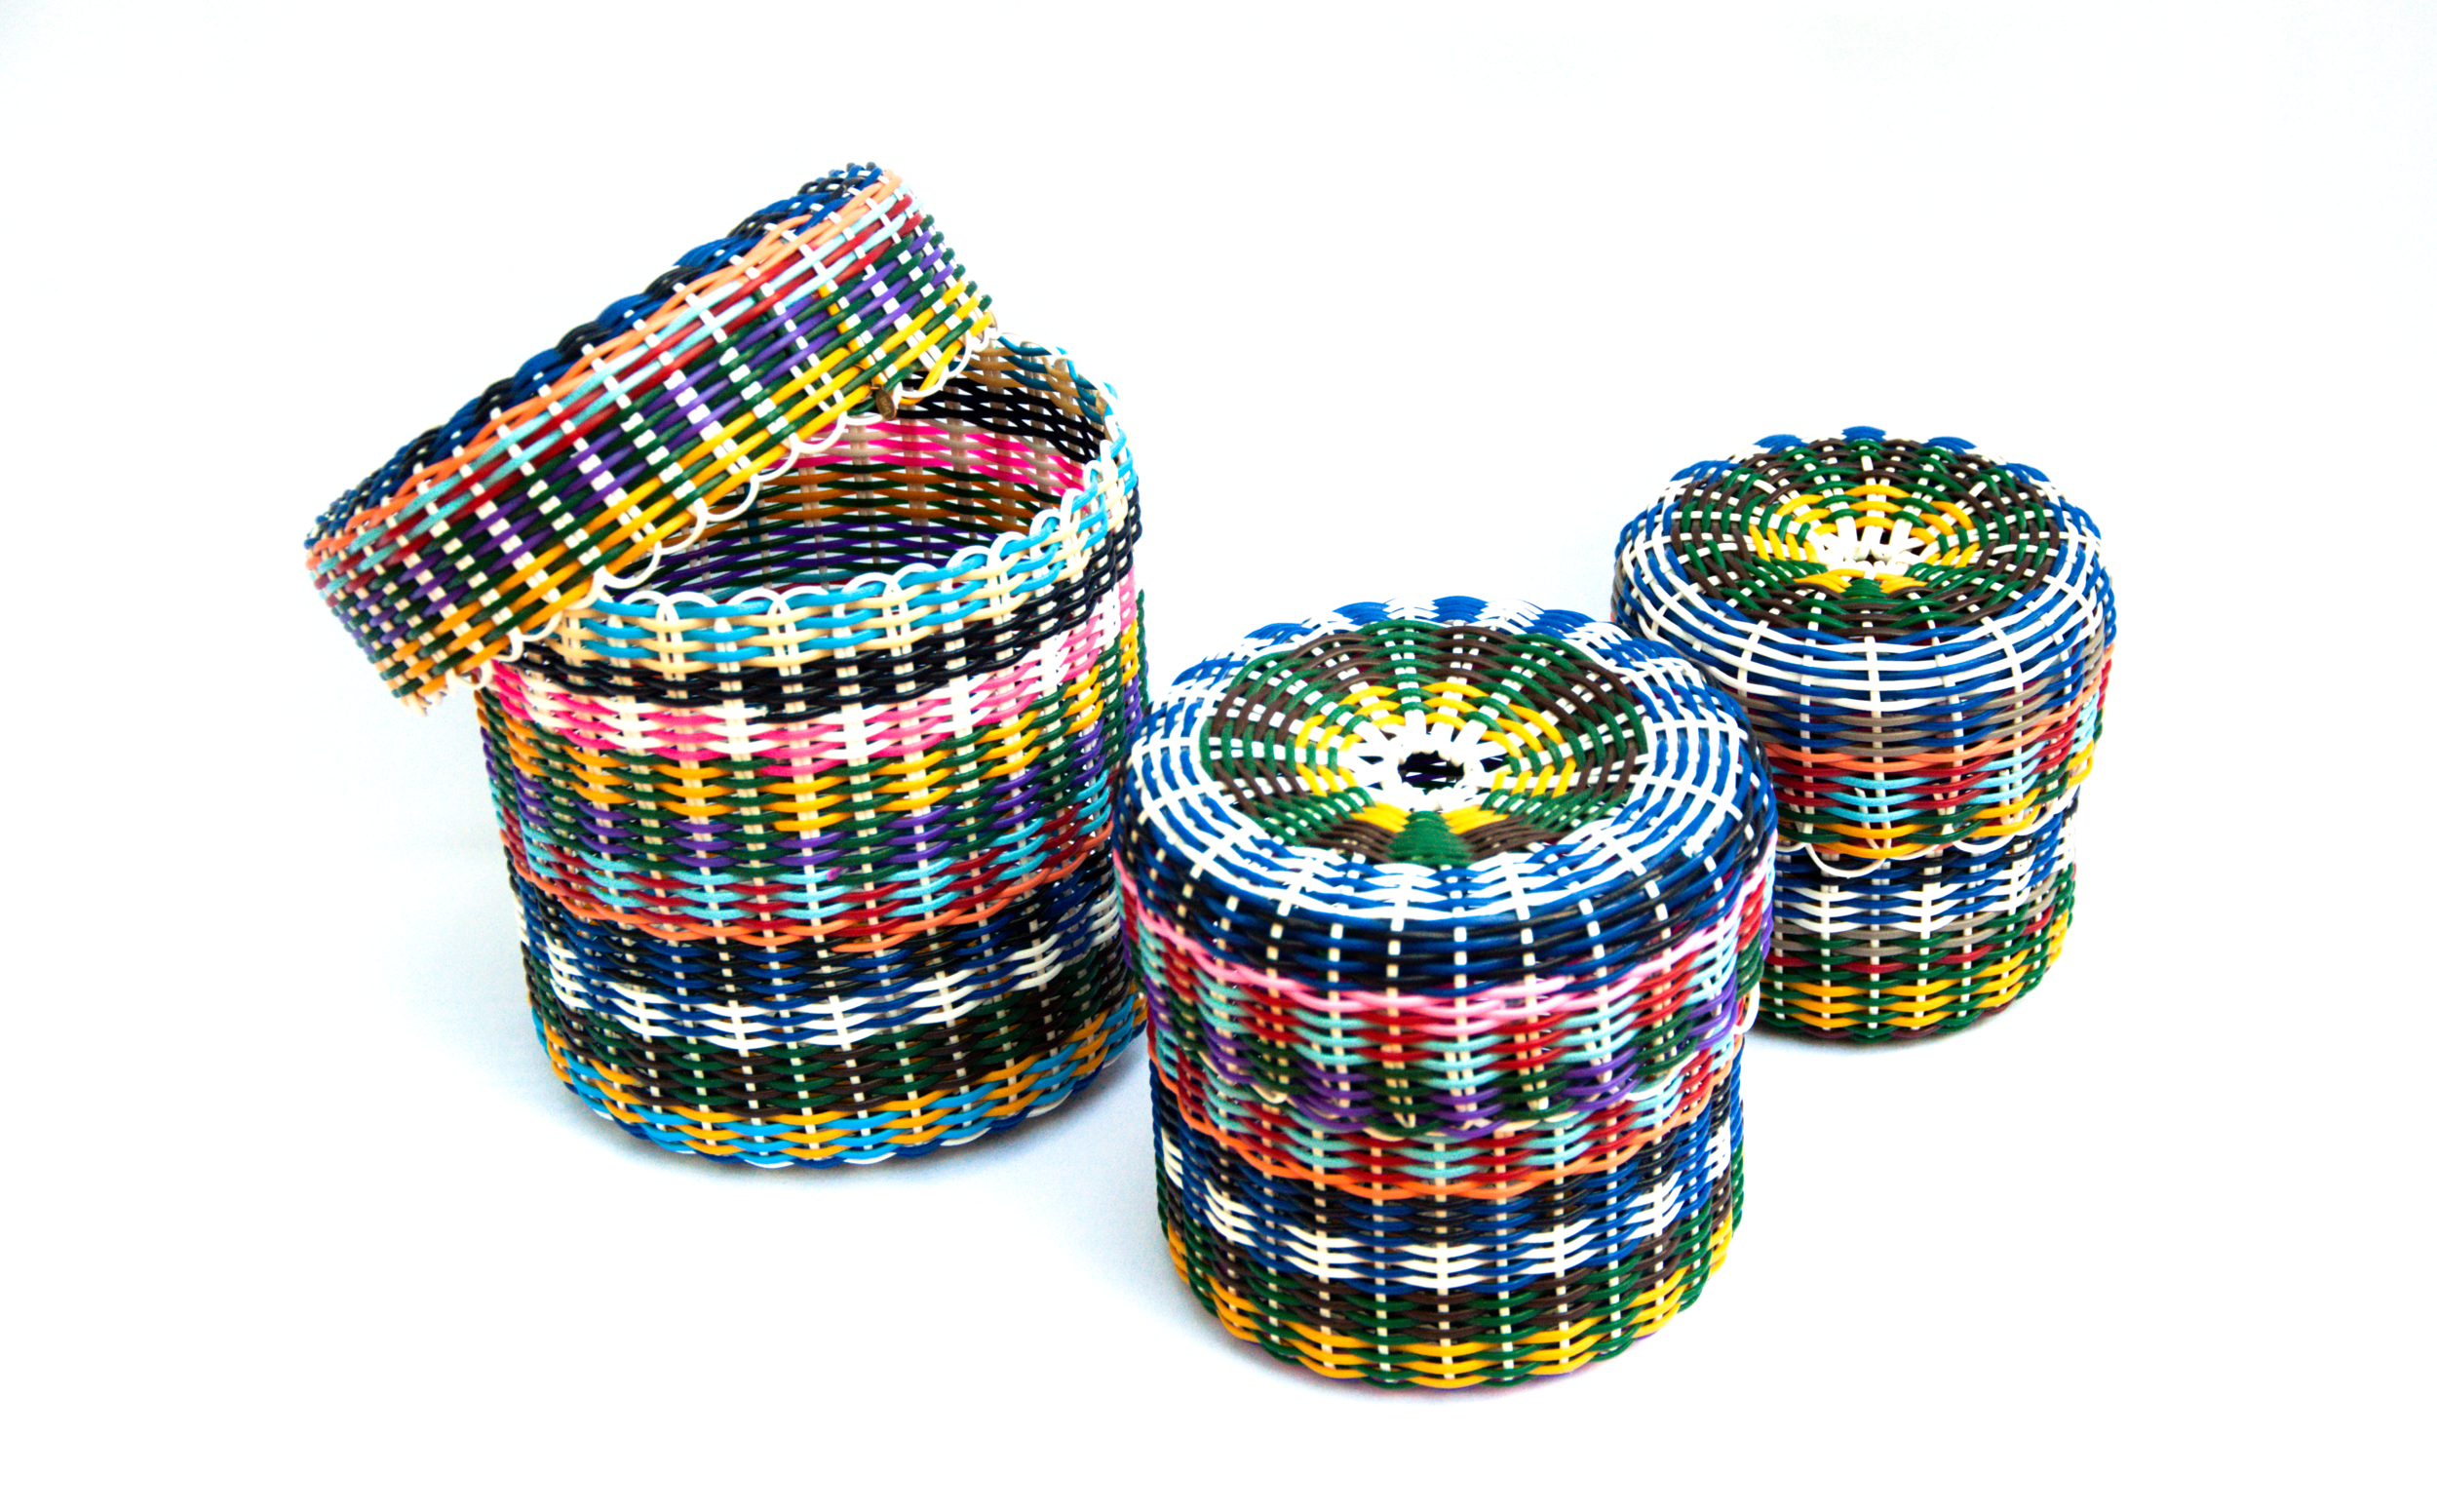 Containers hand woven from recycled plastic cord